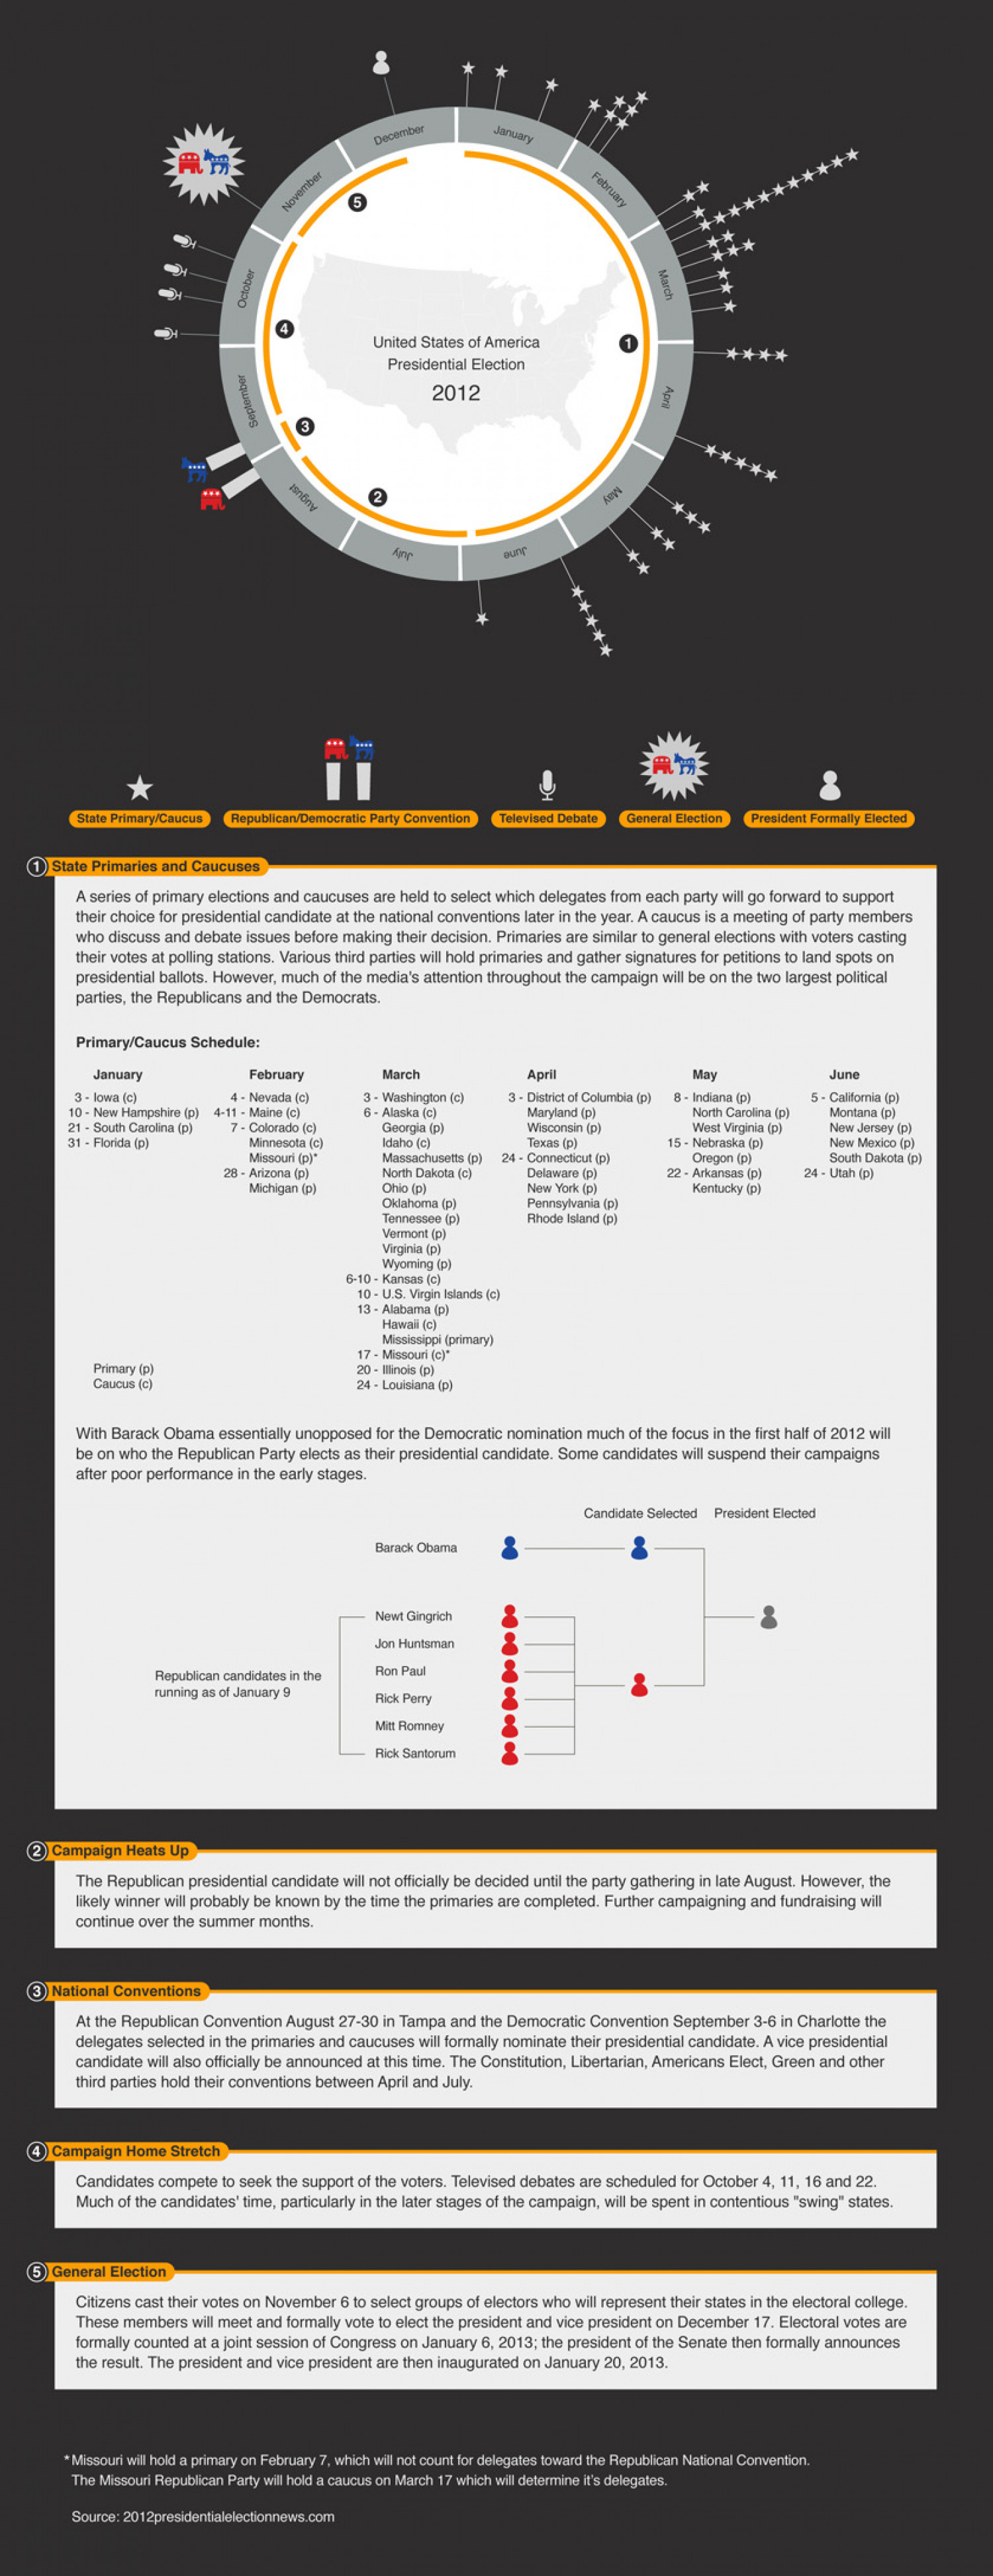 United States of America Presidential Election 2012 Infographic